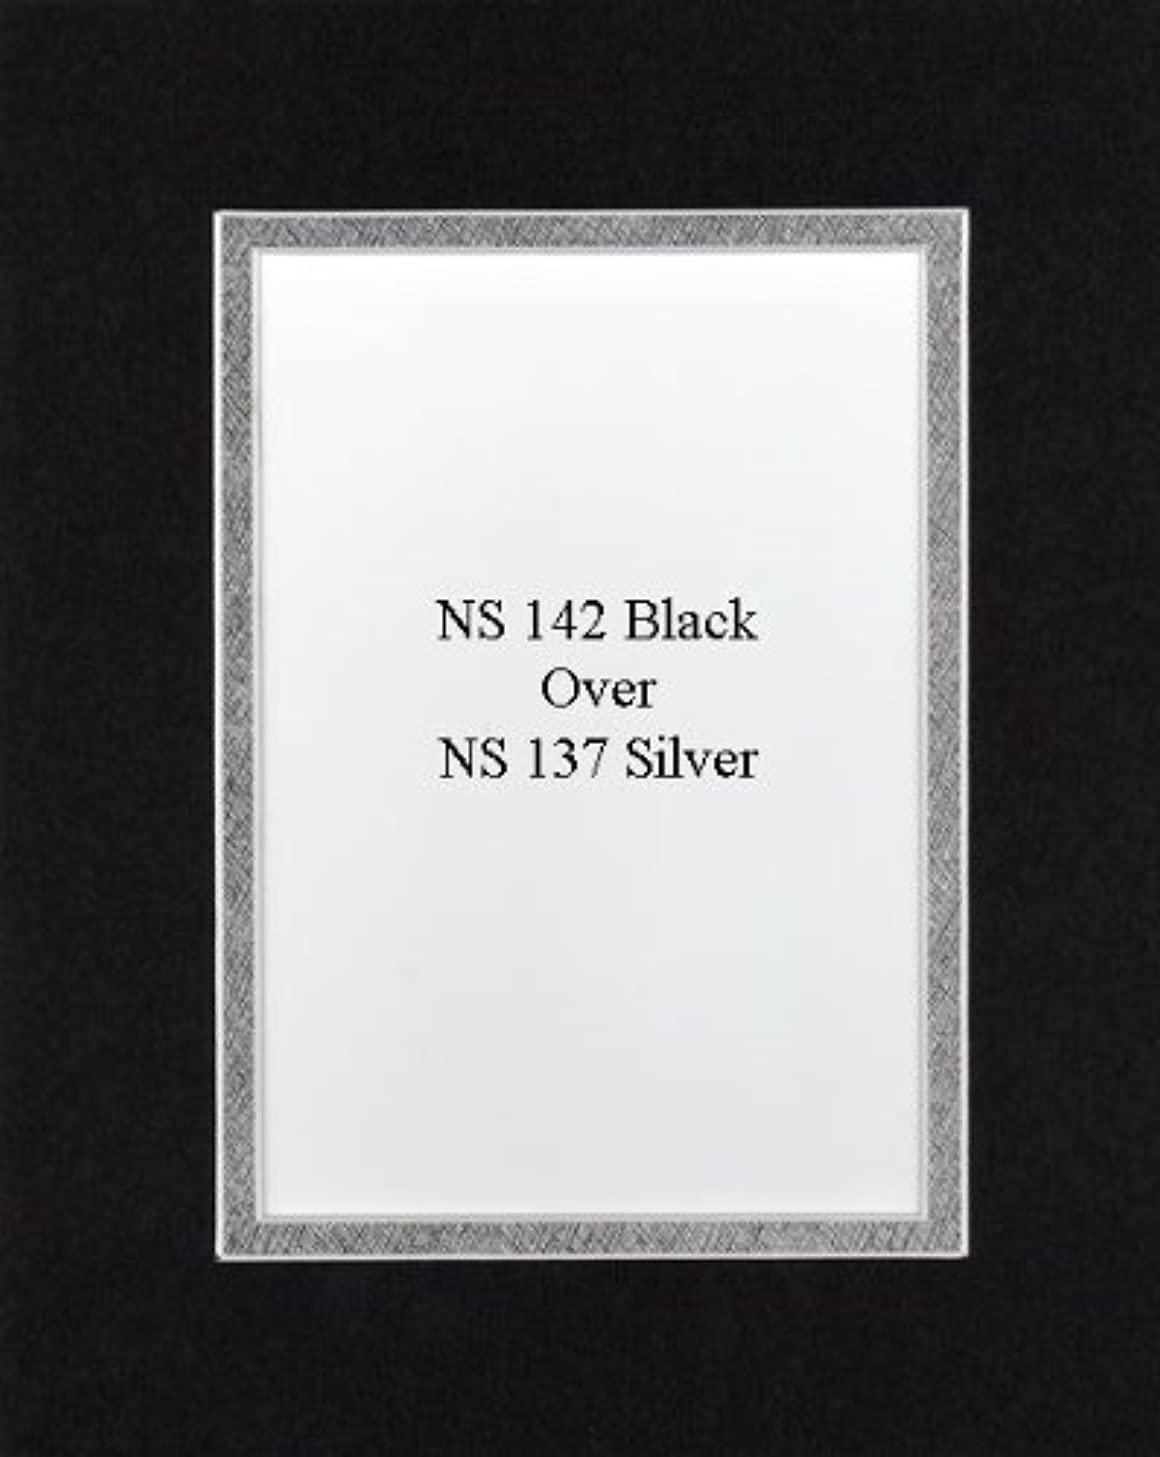 Pack of 32 8x10 Black/Metallic Silver Double Mats Mattes with White Core Bevel Cut for 5x7 Photo + Backing + Bags